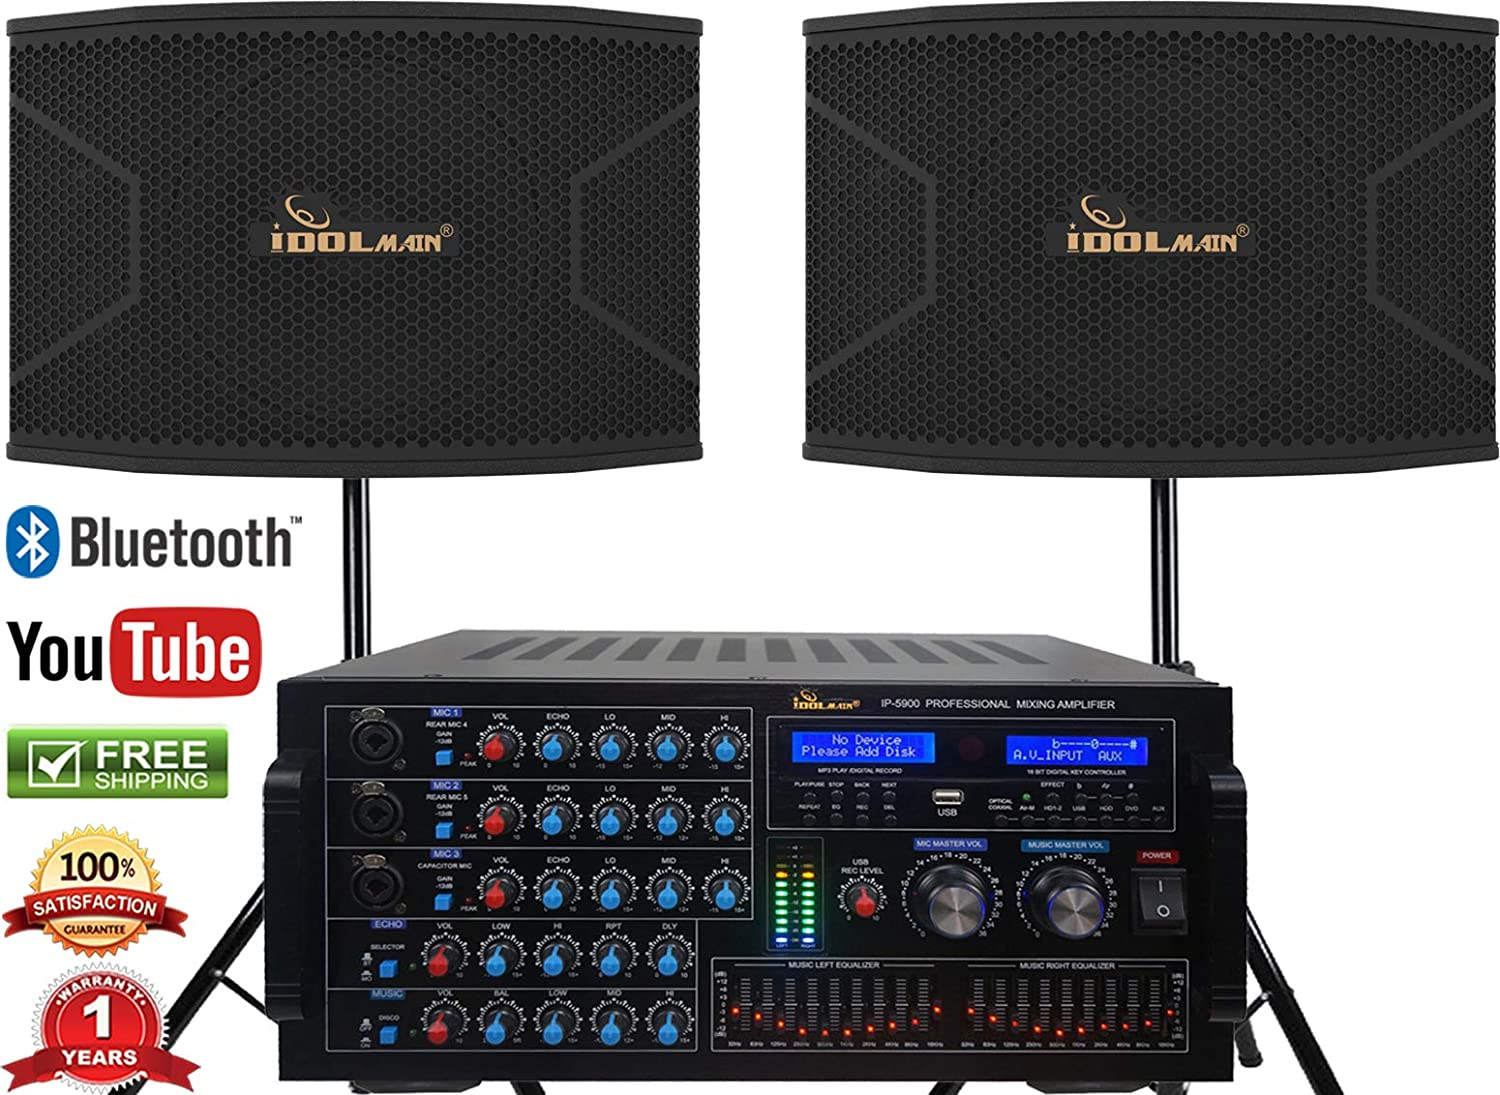 Karaoke Bundle IDOLmain 1500W 12-inch Speaker With 6000W Mixing Amplifier With Bluetooth HDMI Optical Input Recording and 10 Bands Equalizer